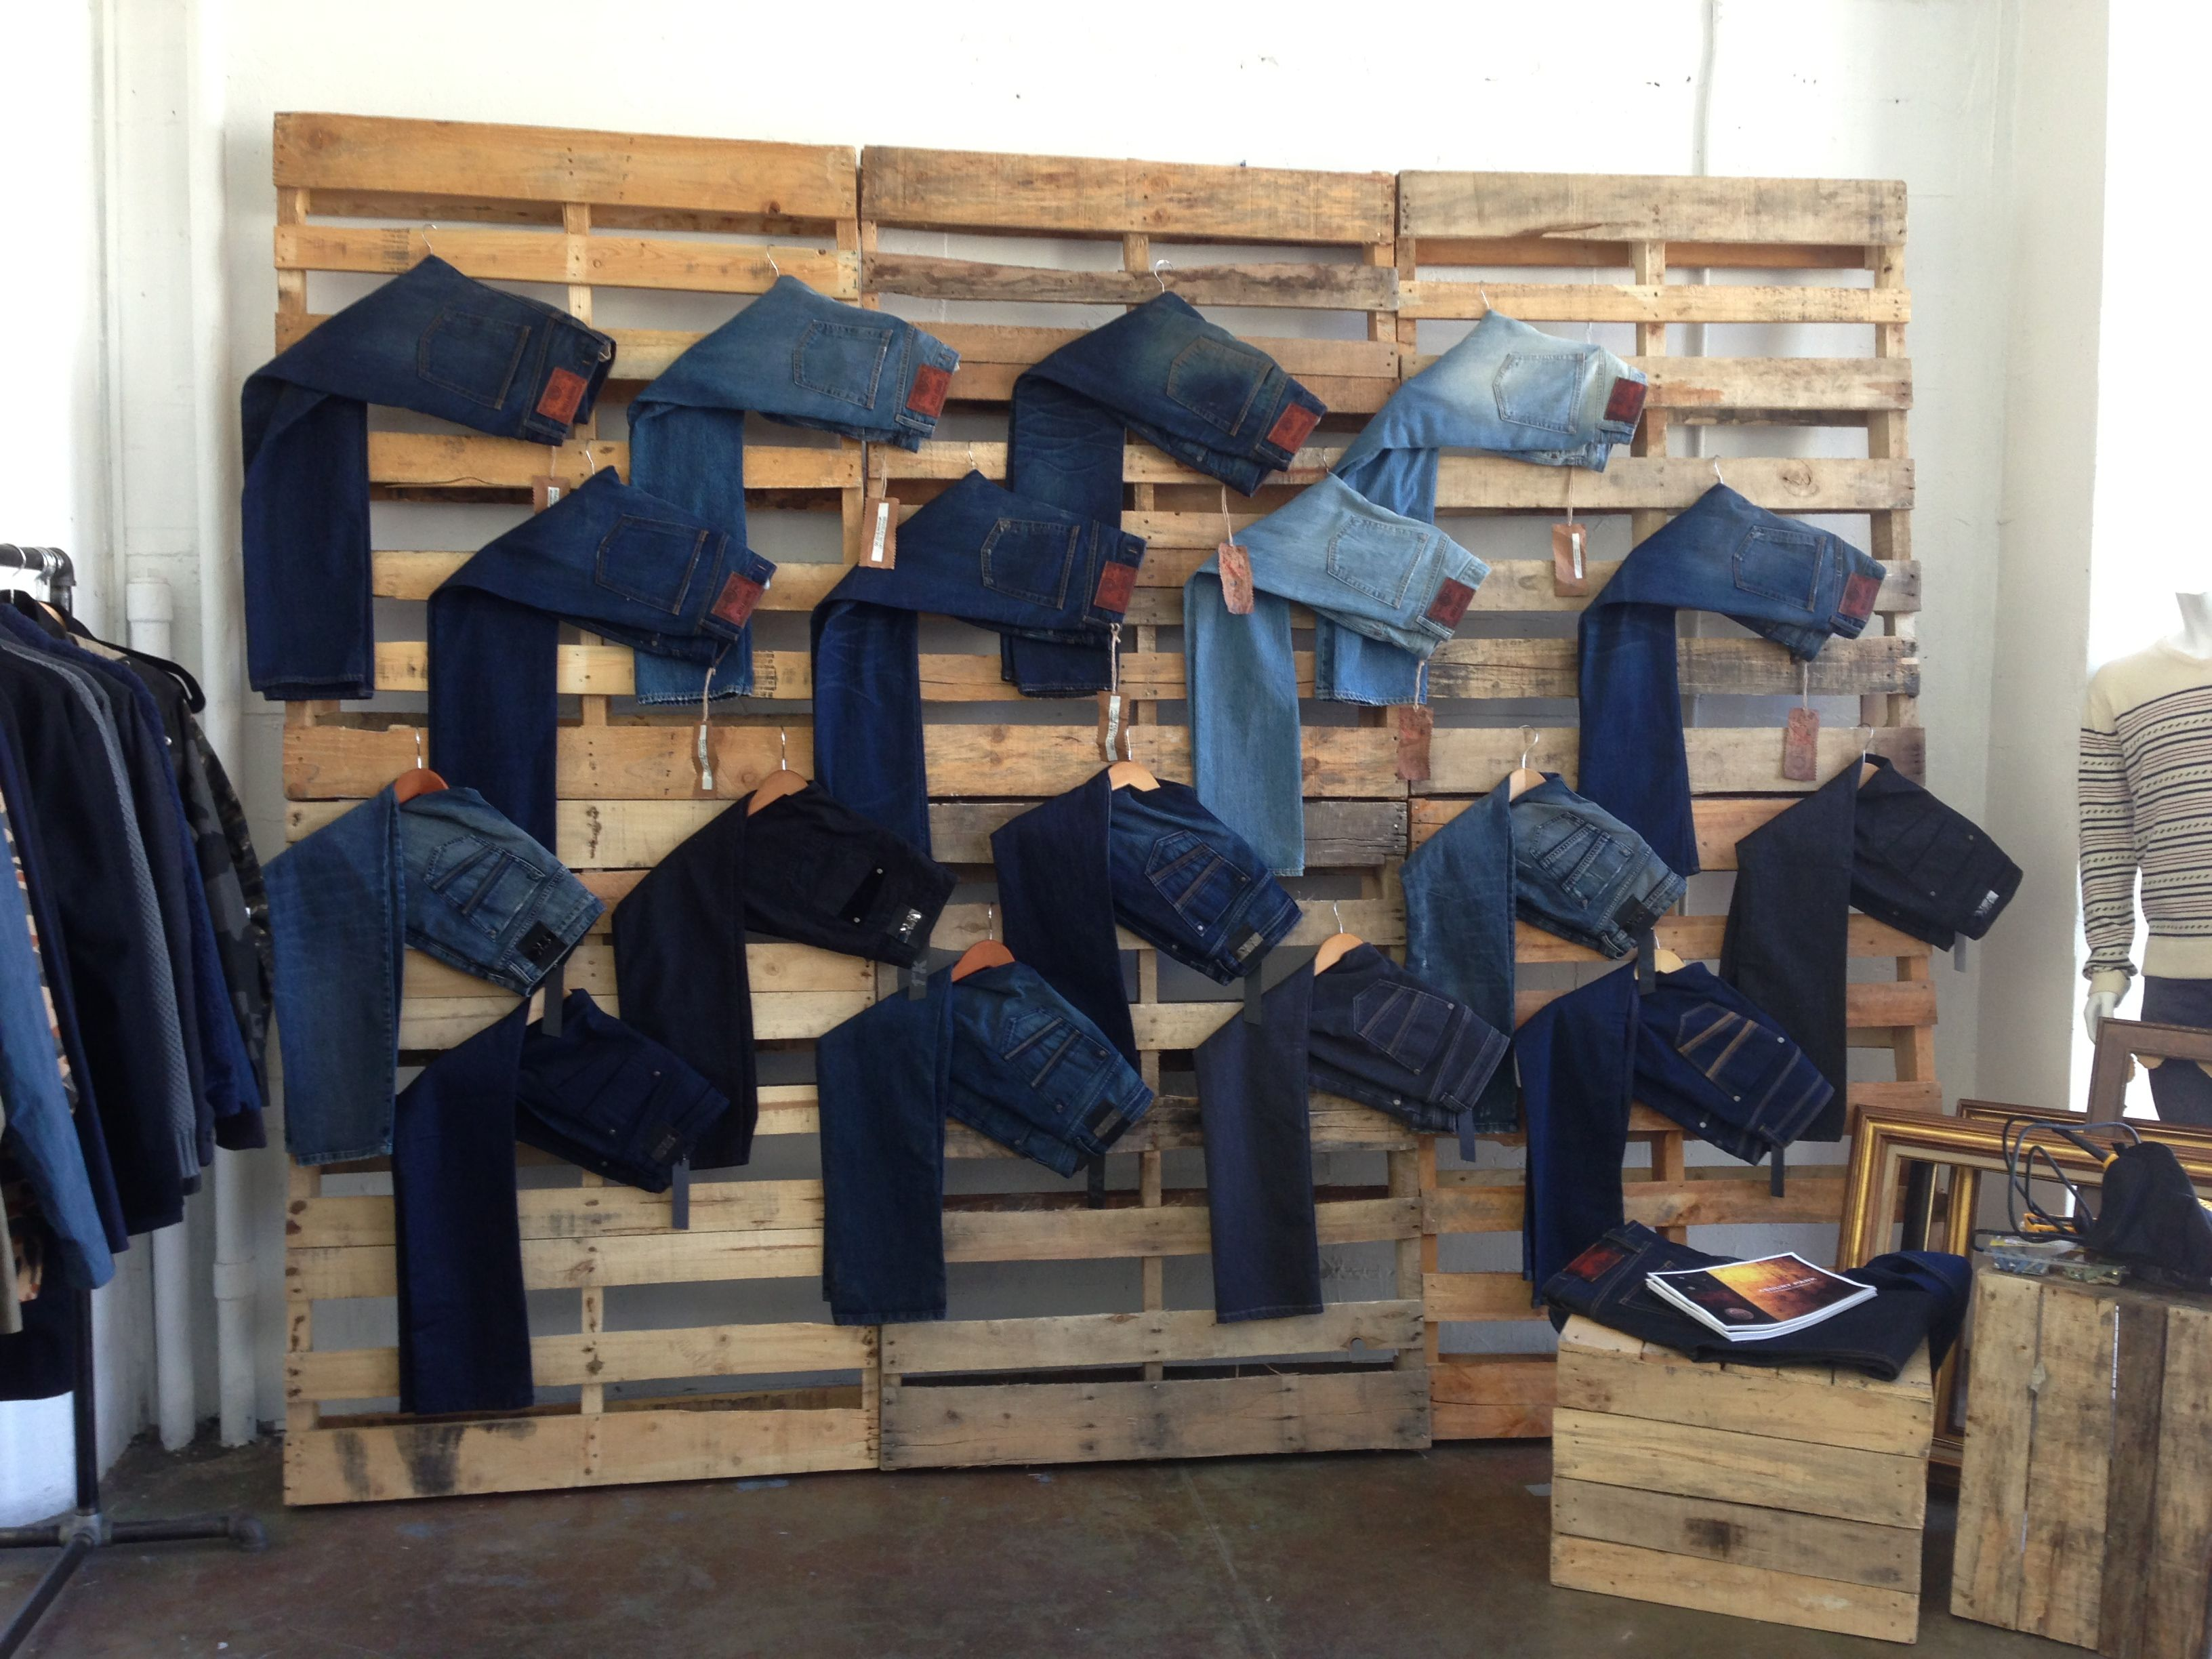 Muebles Para Escaparates Denim Wall Asbury Park Exhibidores En 2019